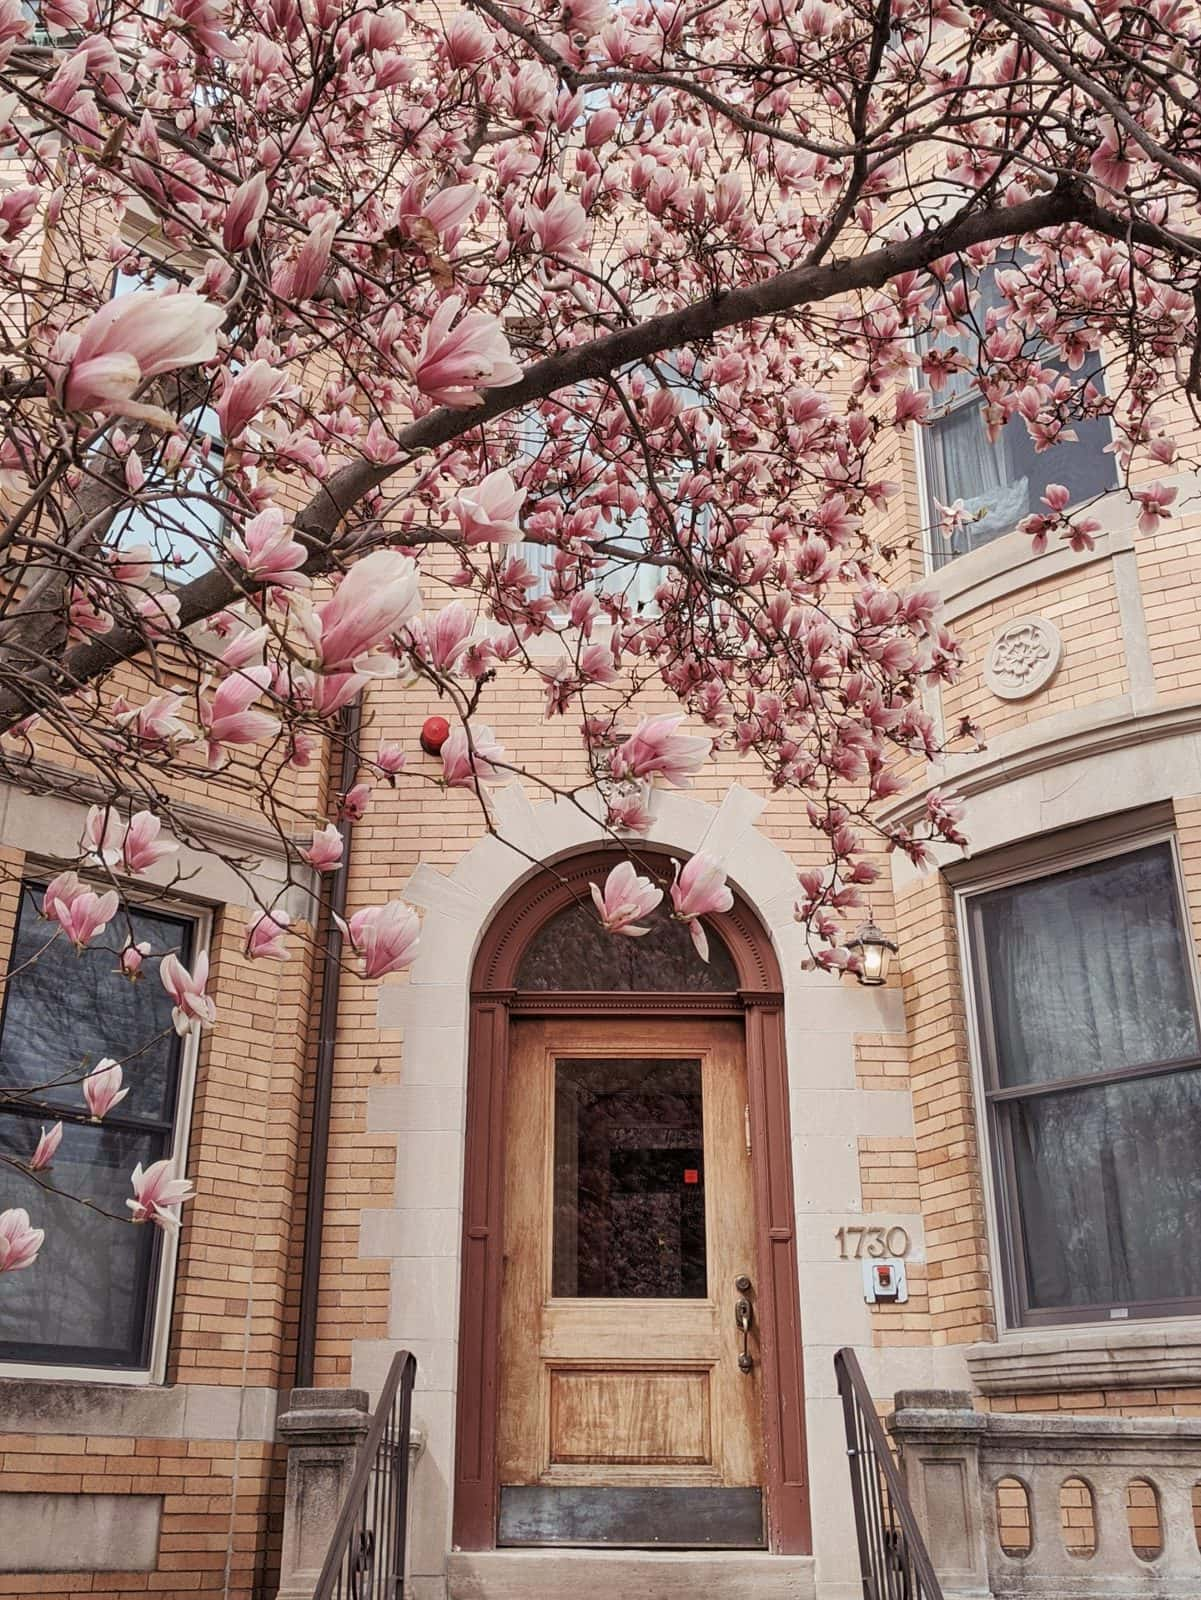 magnolias in front of a yellow brick building and arched door